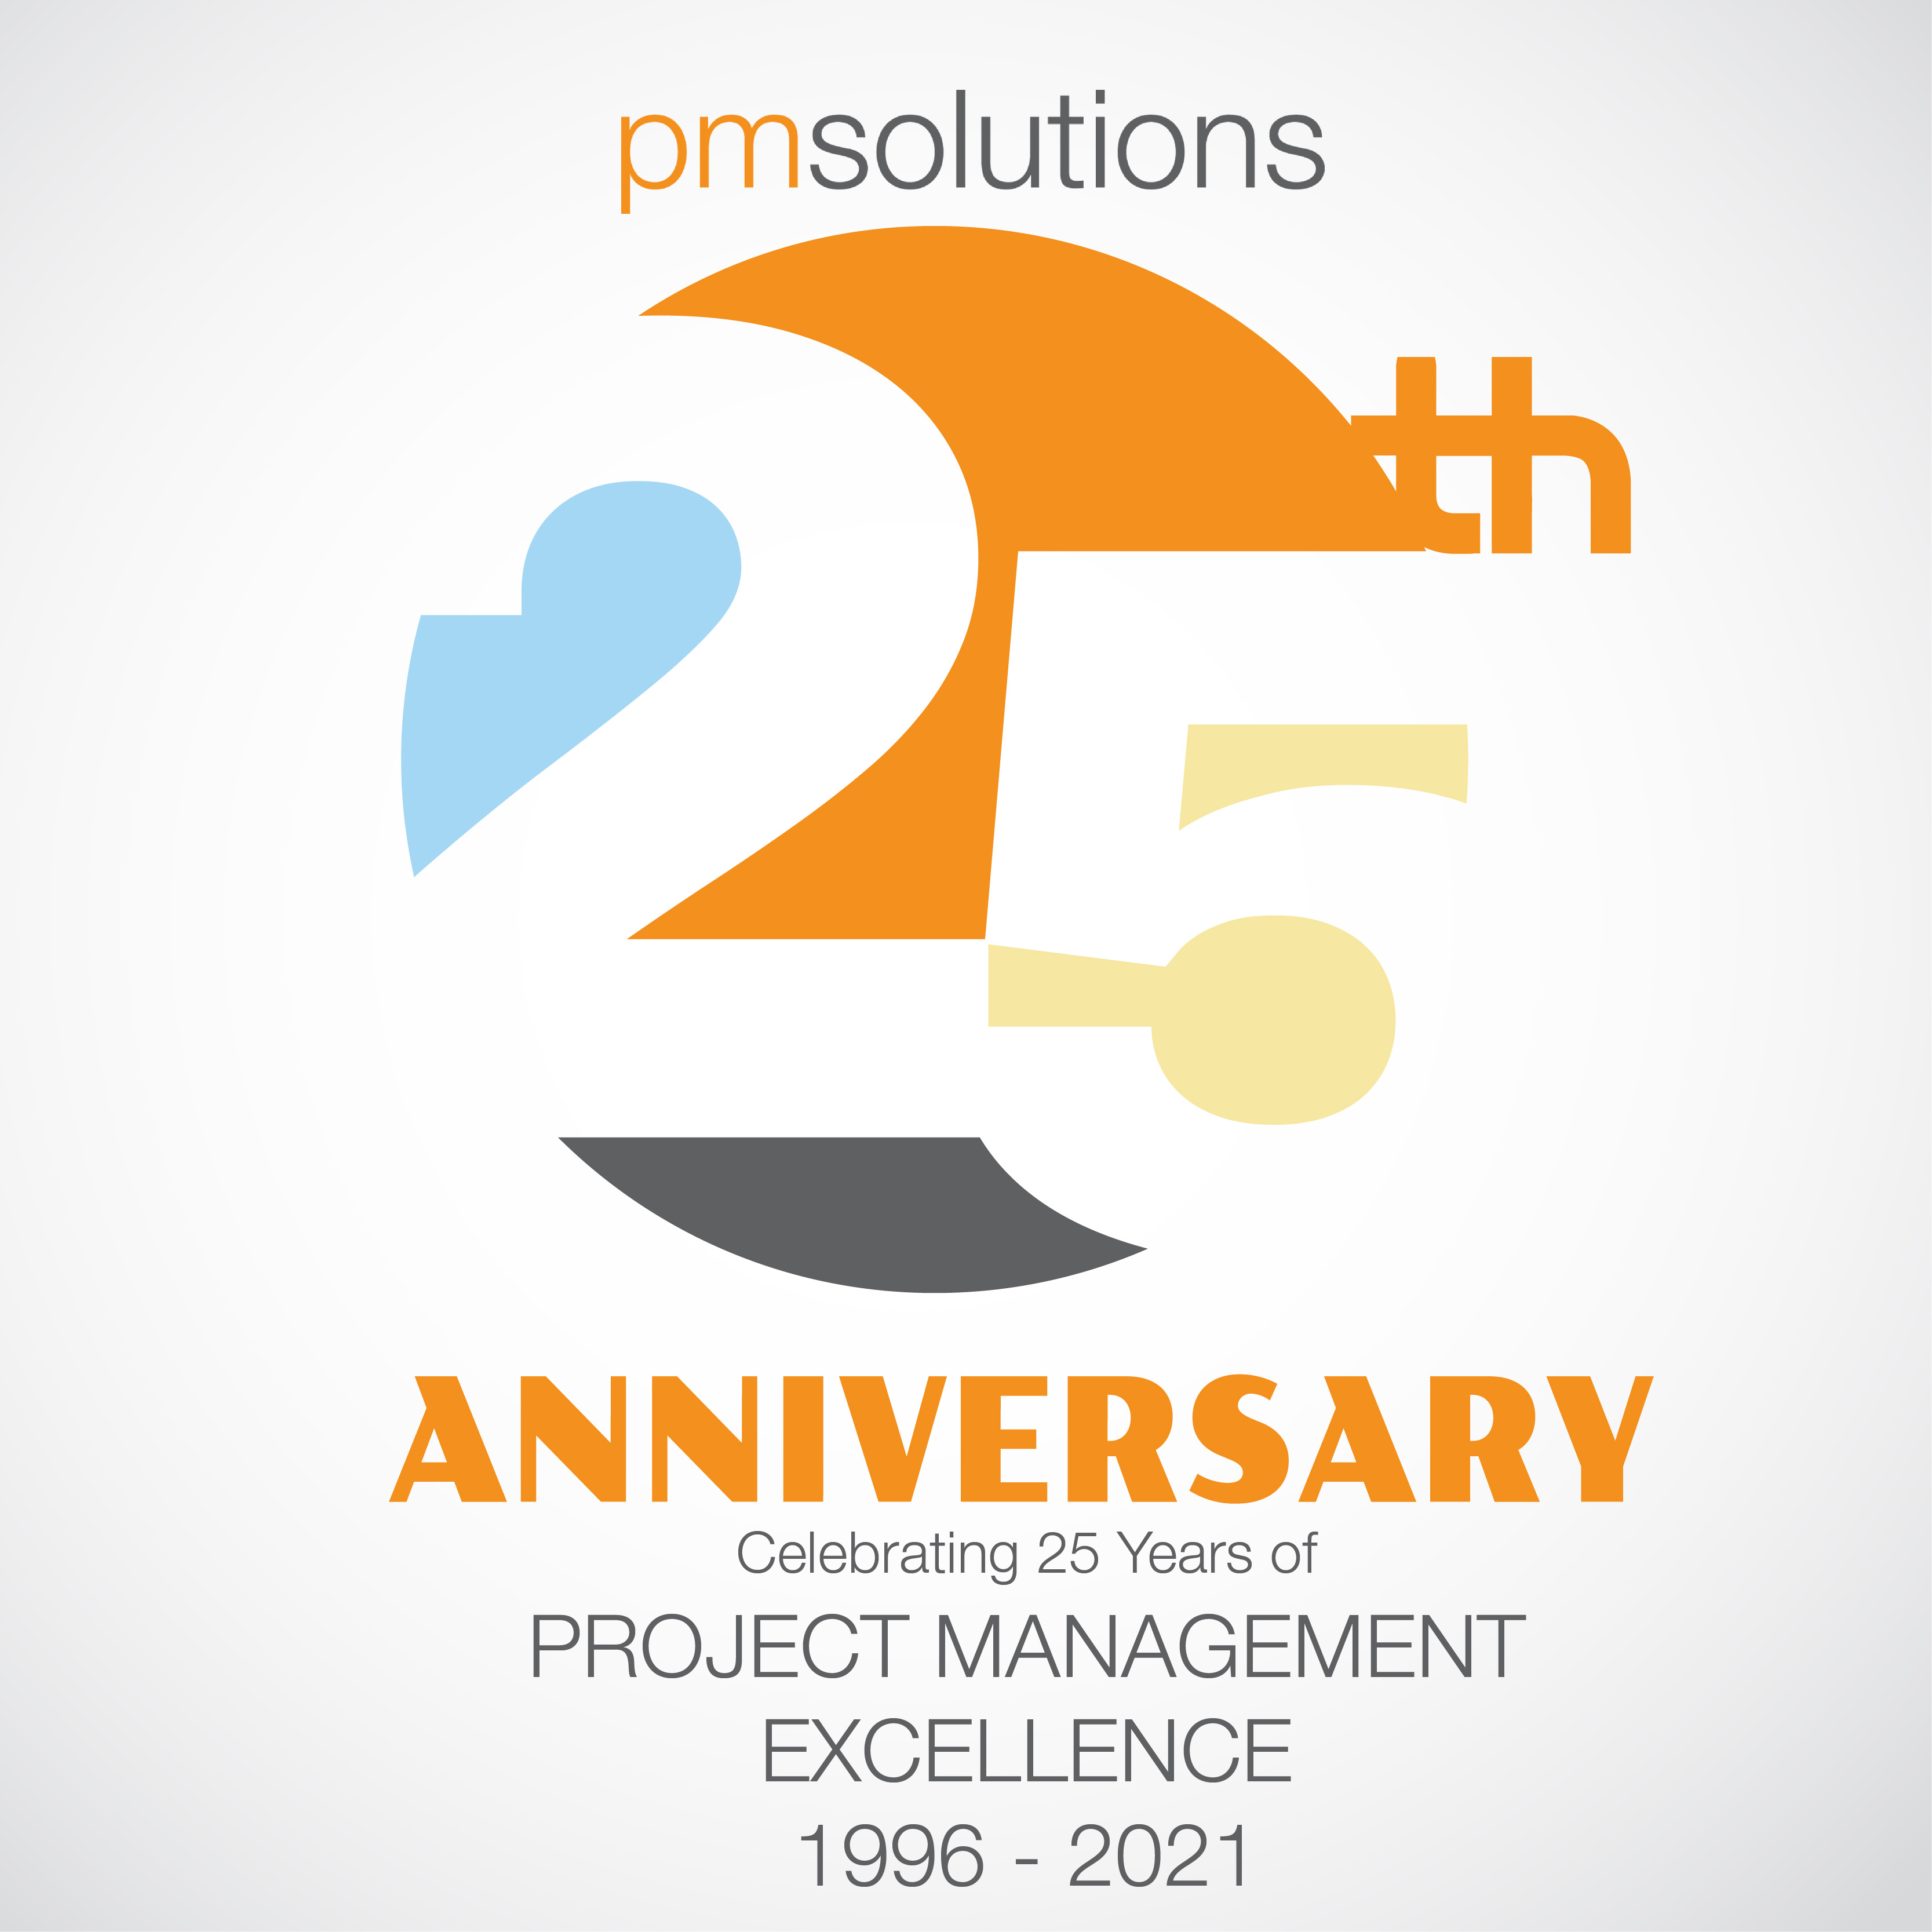 PM Solutions Celebrates 25 Years of Project Management Excellence